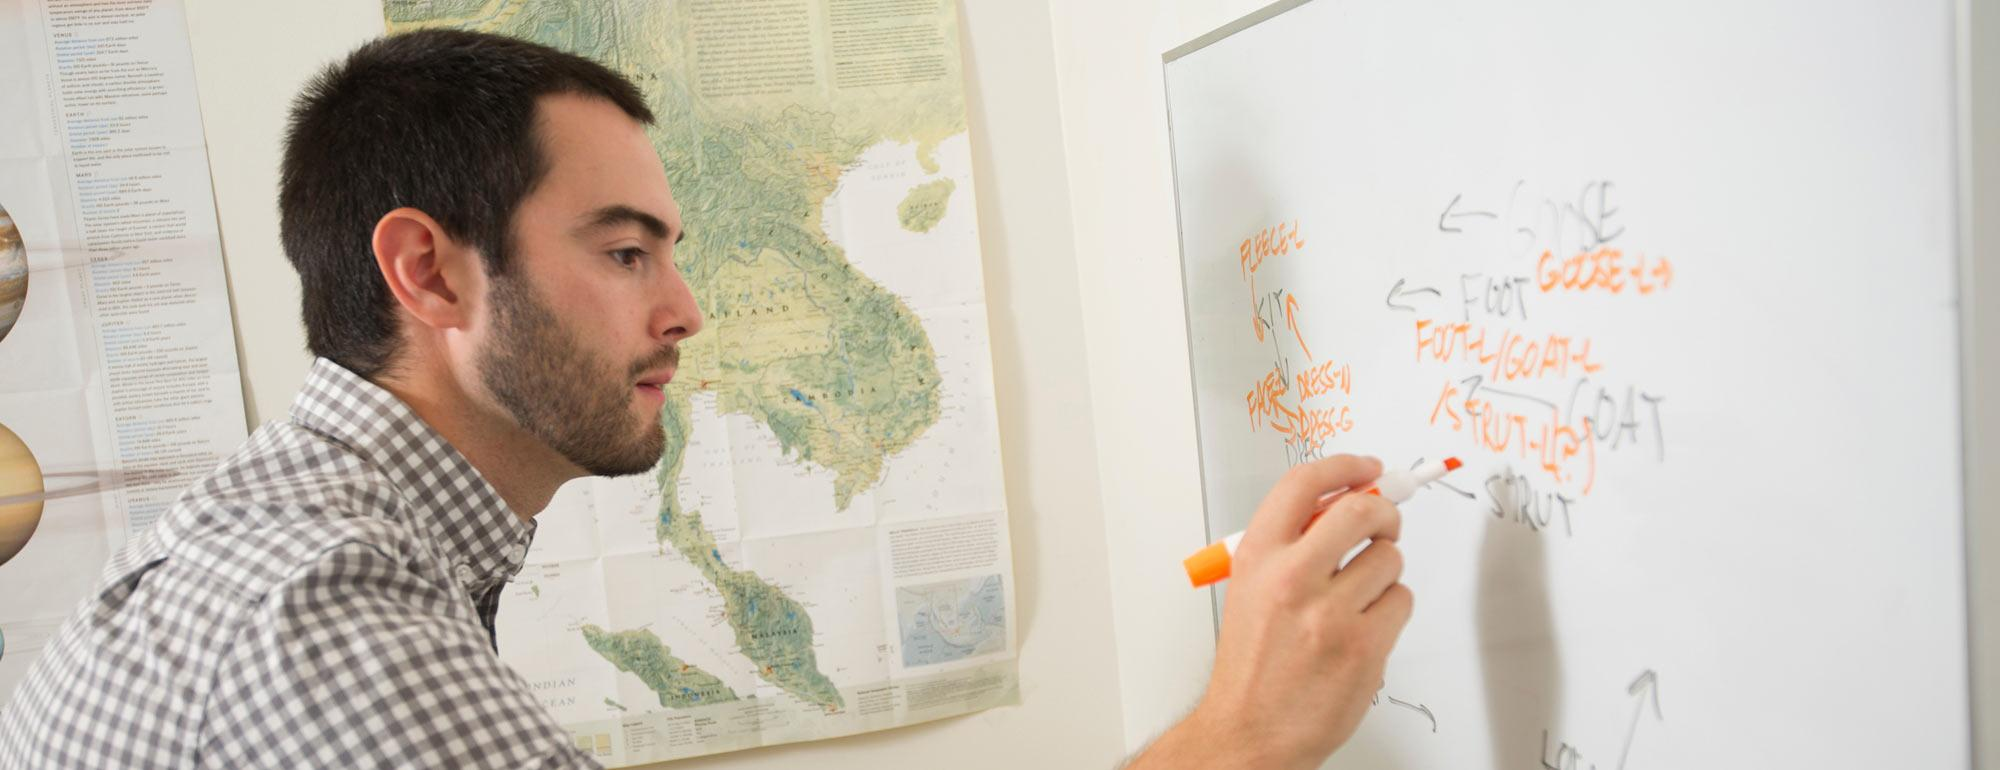 A PHD candidate evaluates word structure on a whiteboard